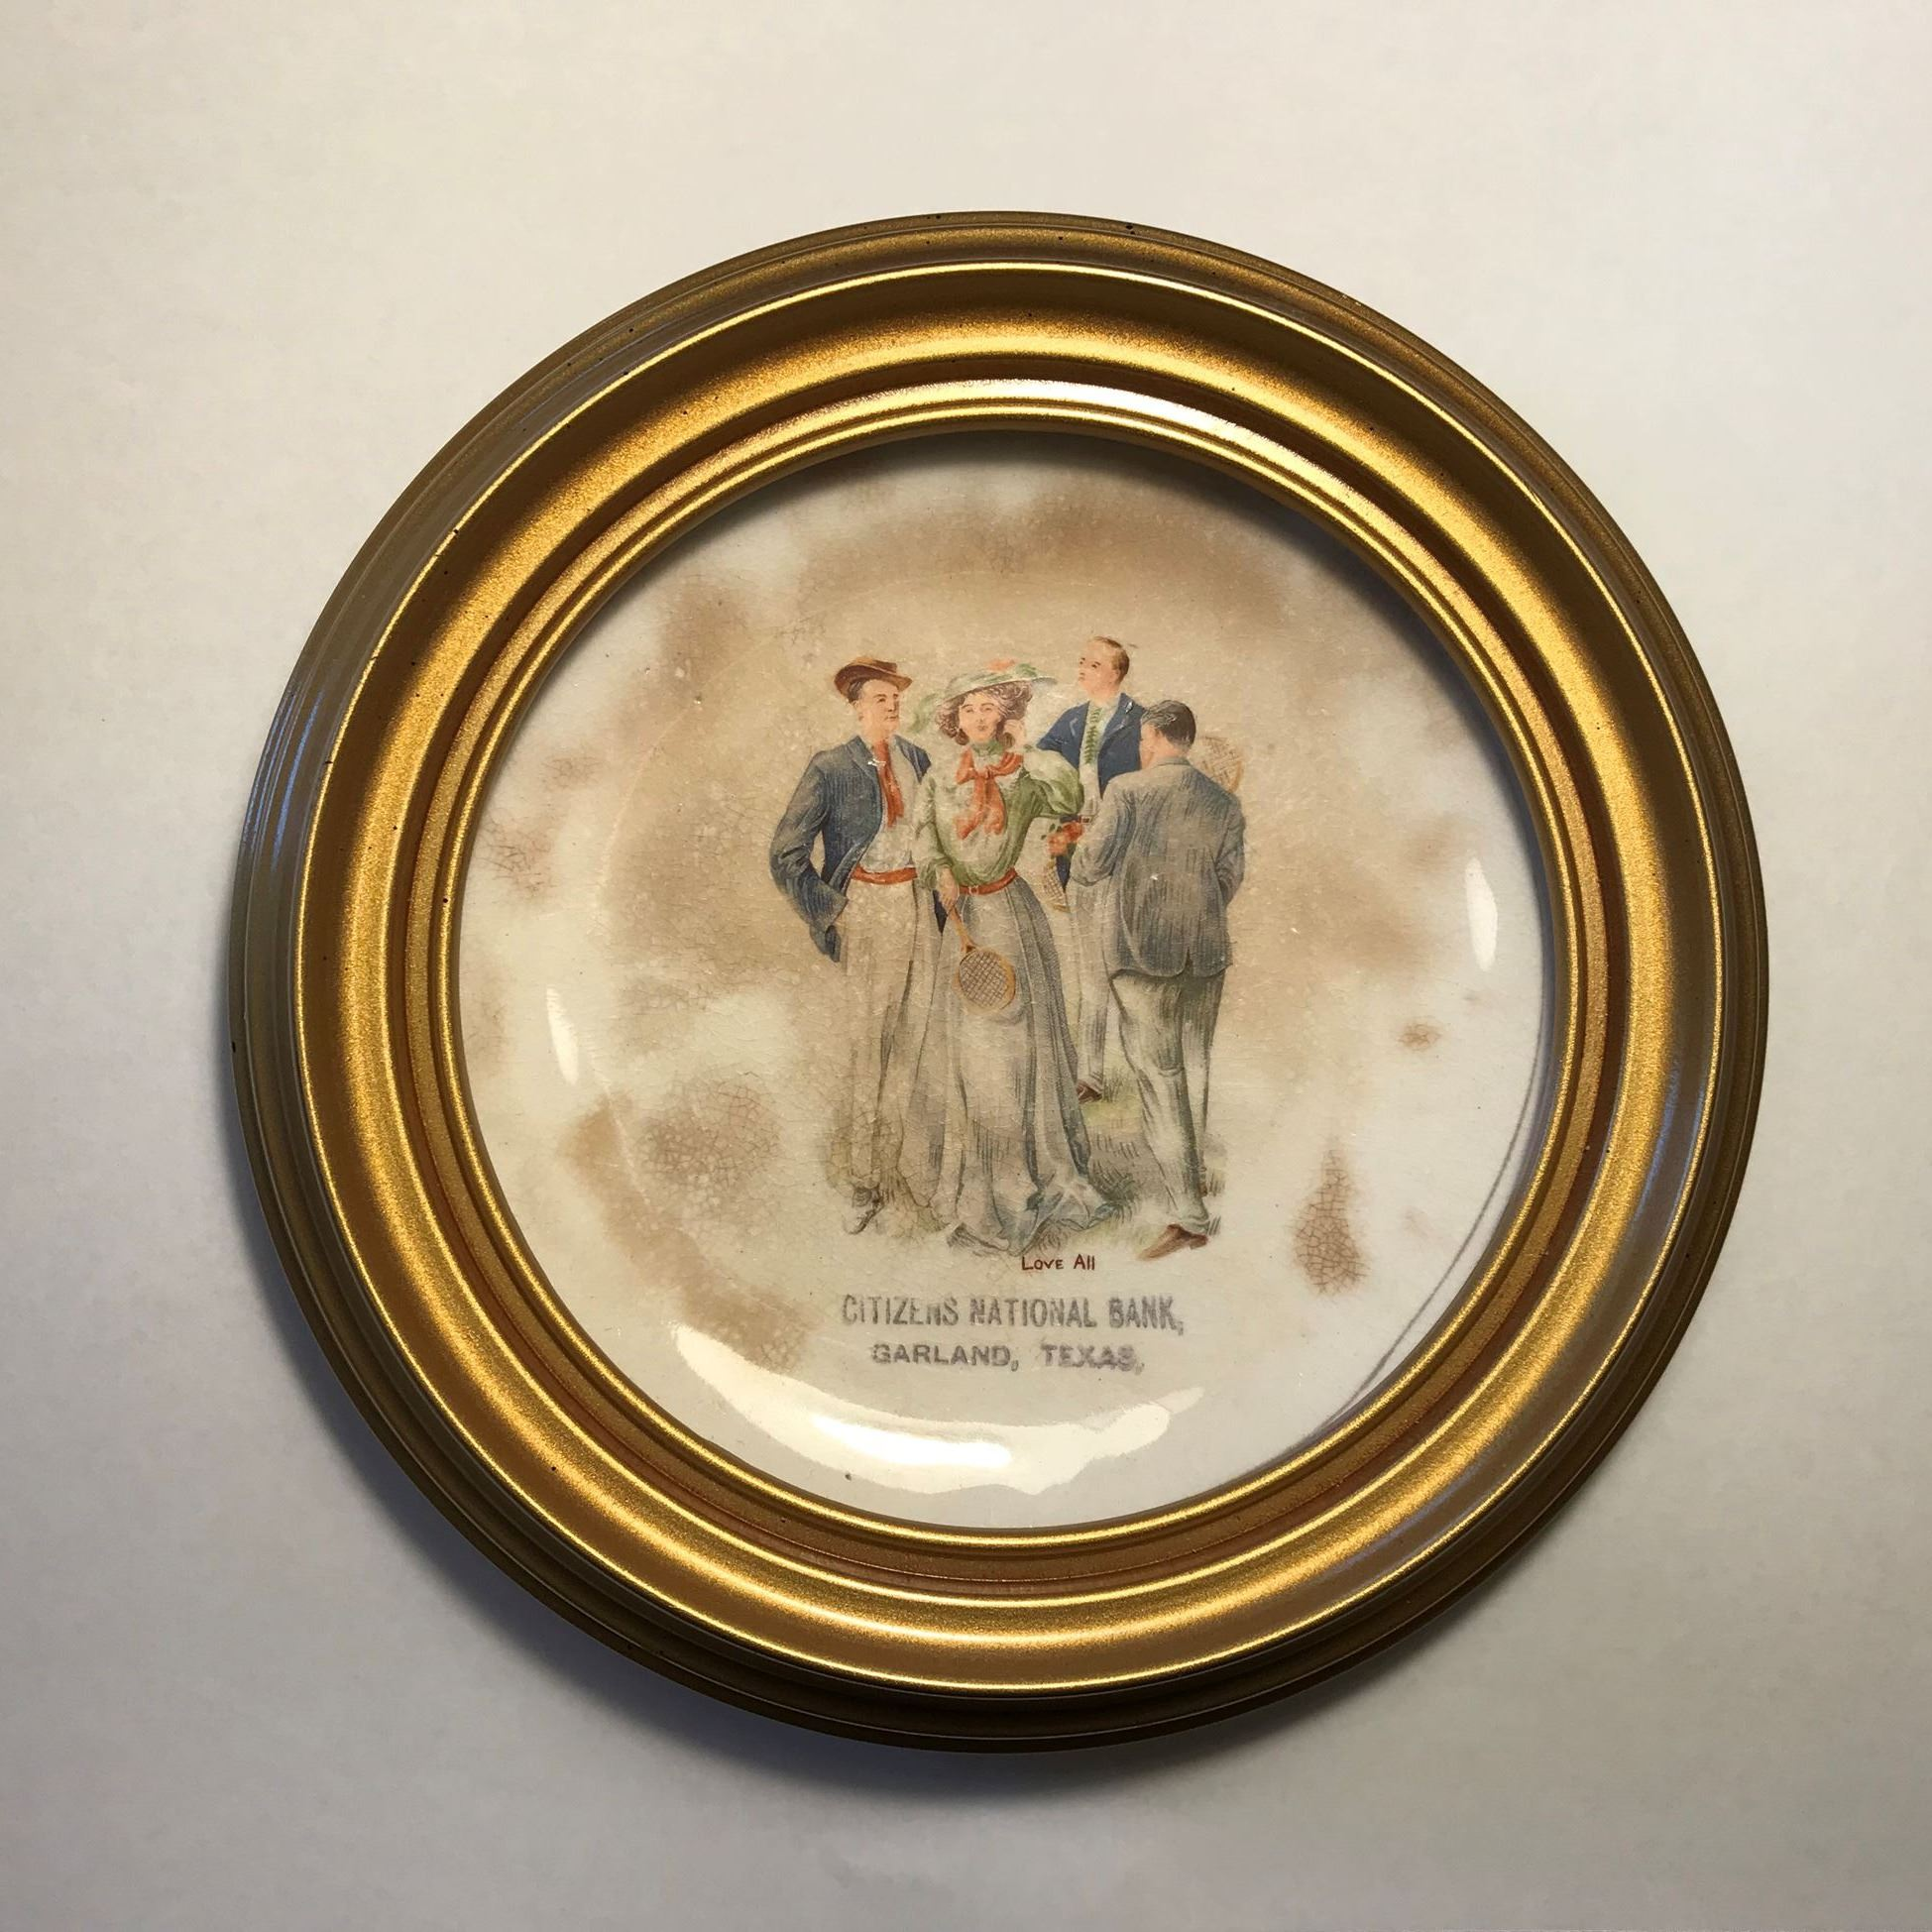 First National Bank commemorative plate